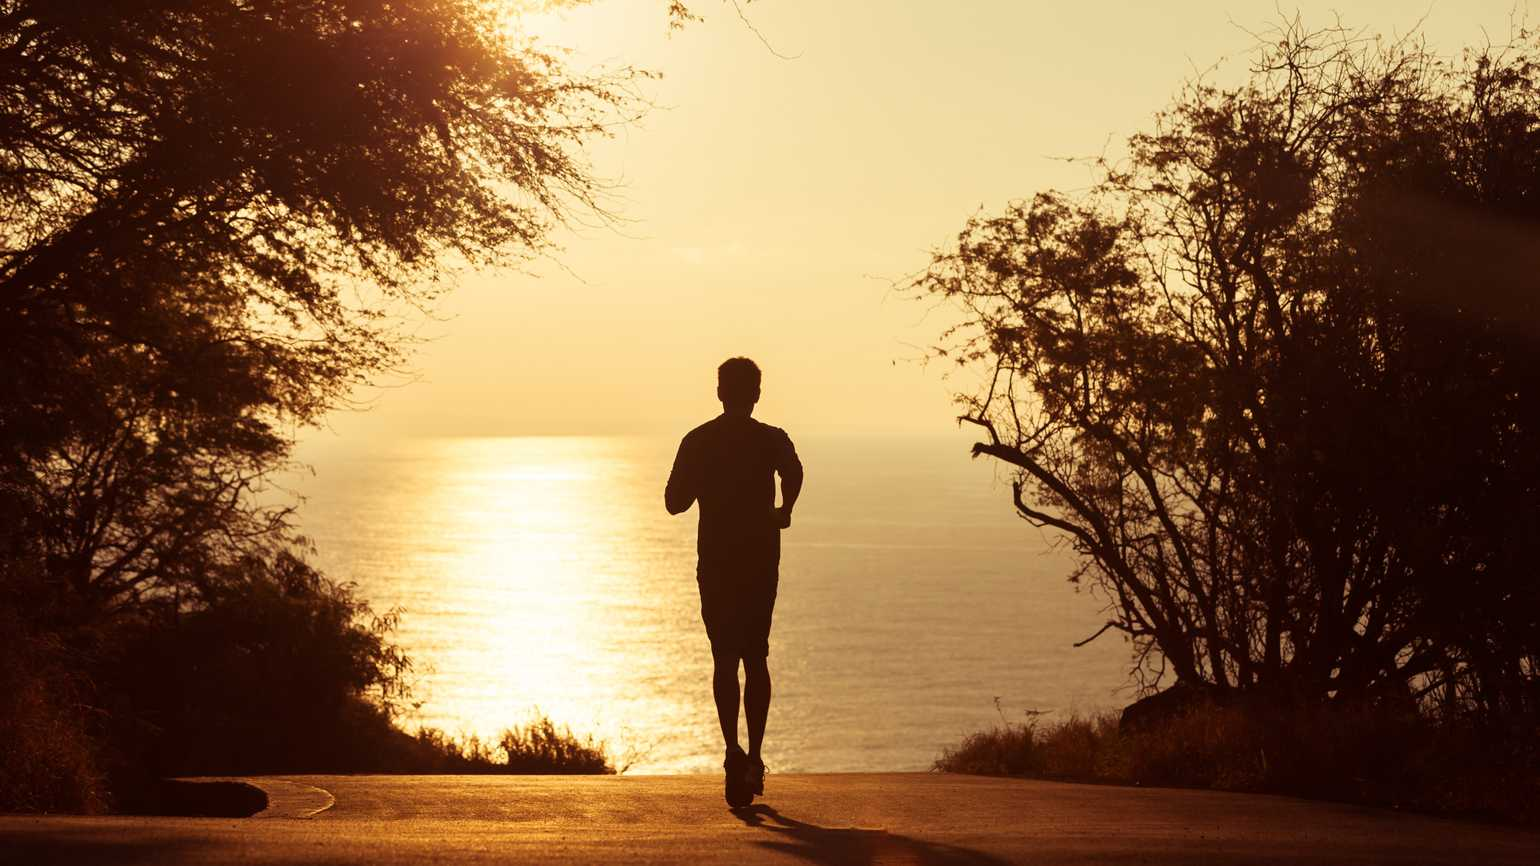 A silhouette of a man going for a morning run.